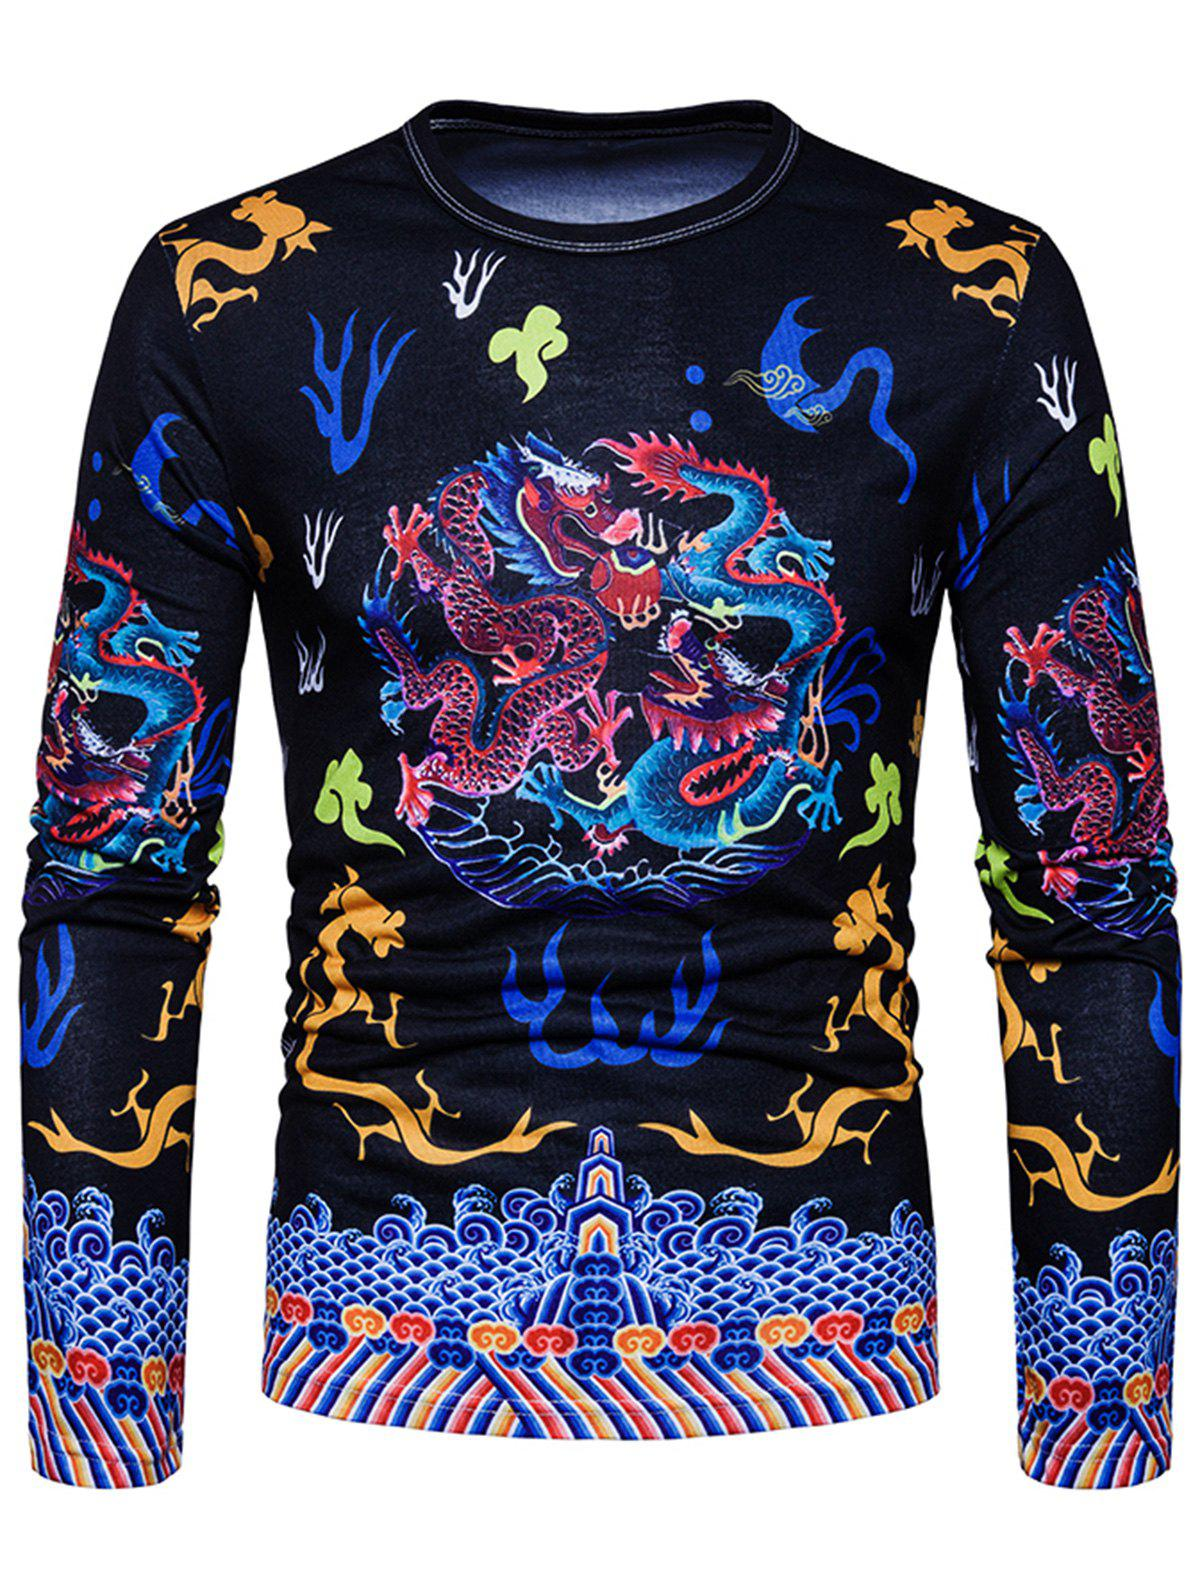 Affordable Vintage Chinese Style Dragons Print T-shirt